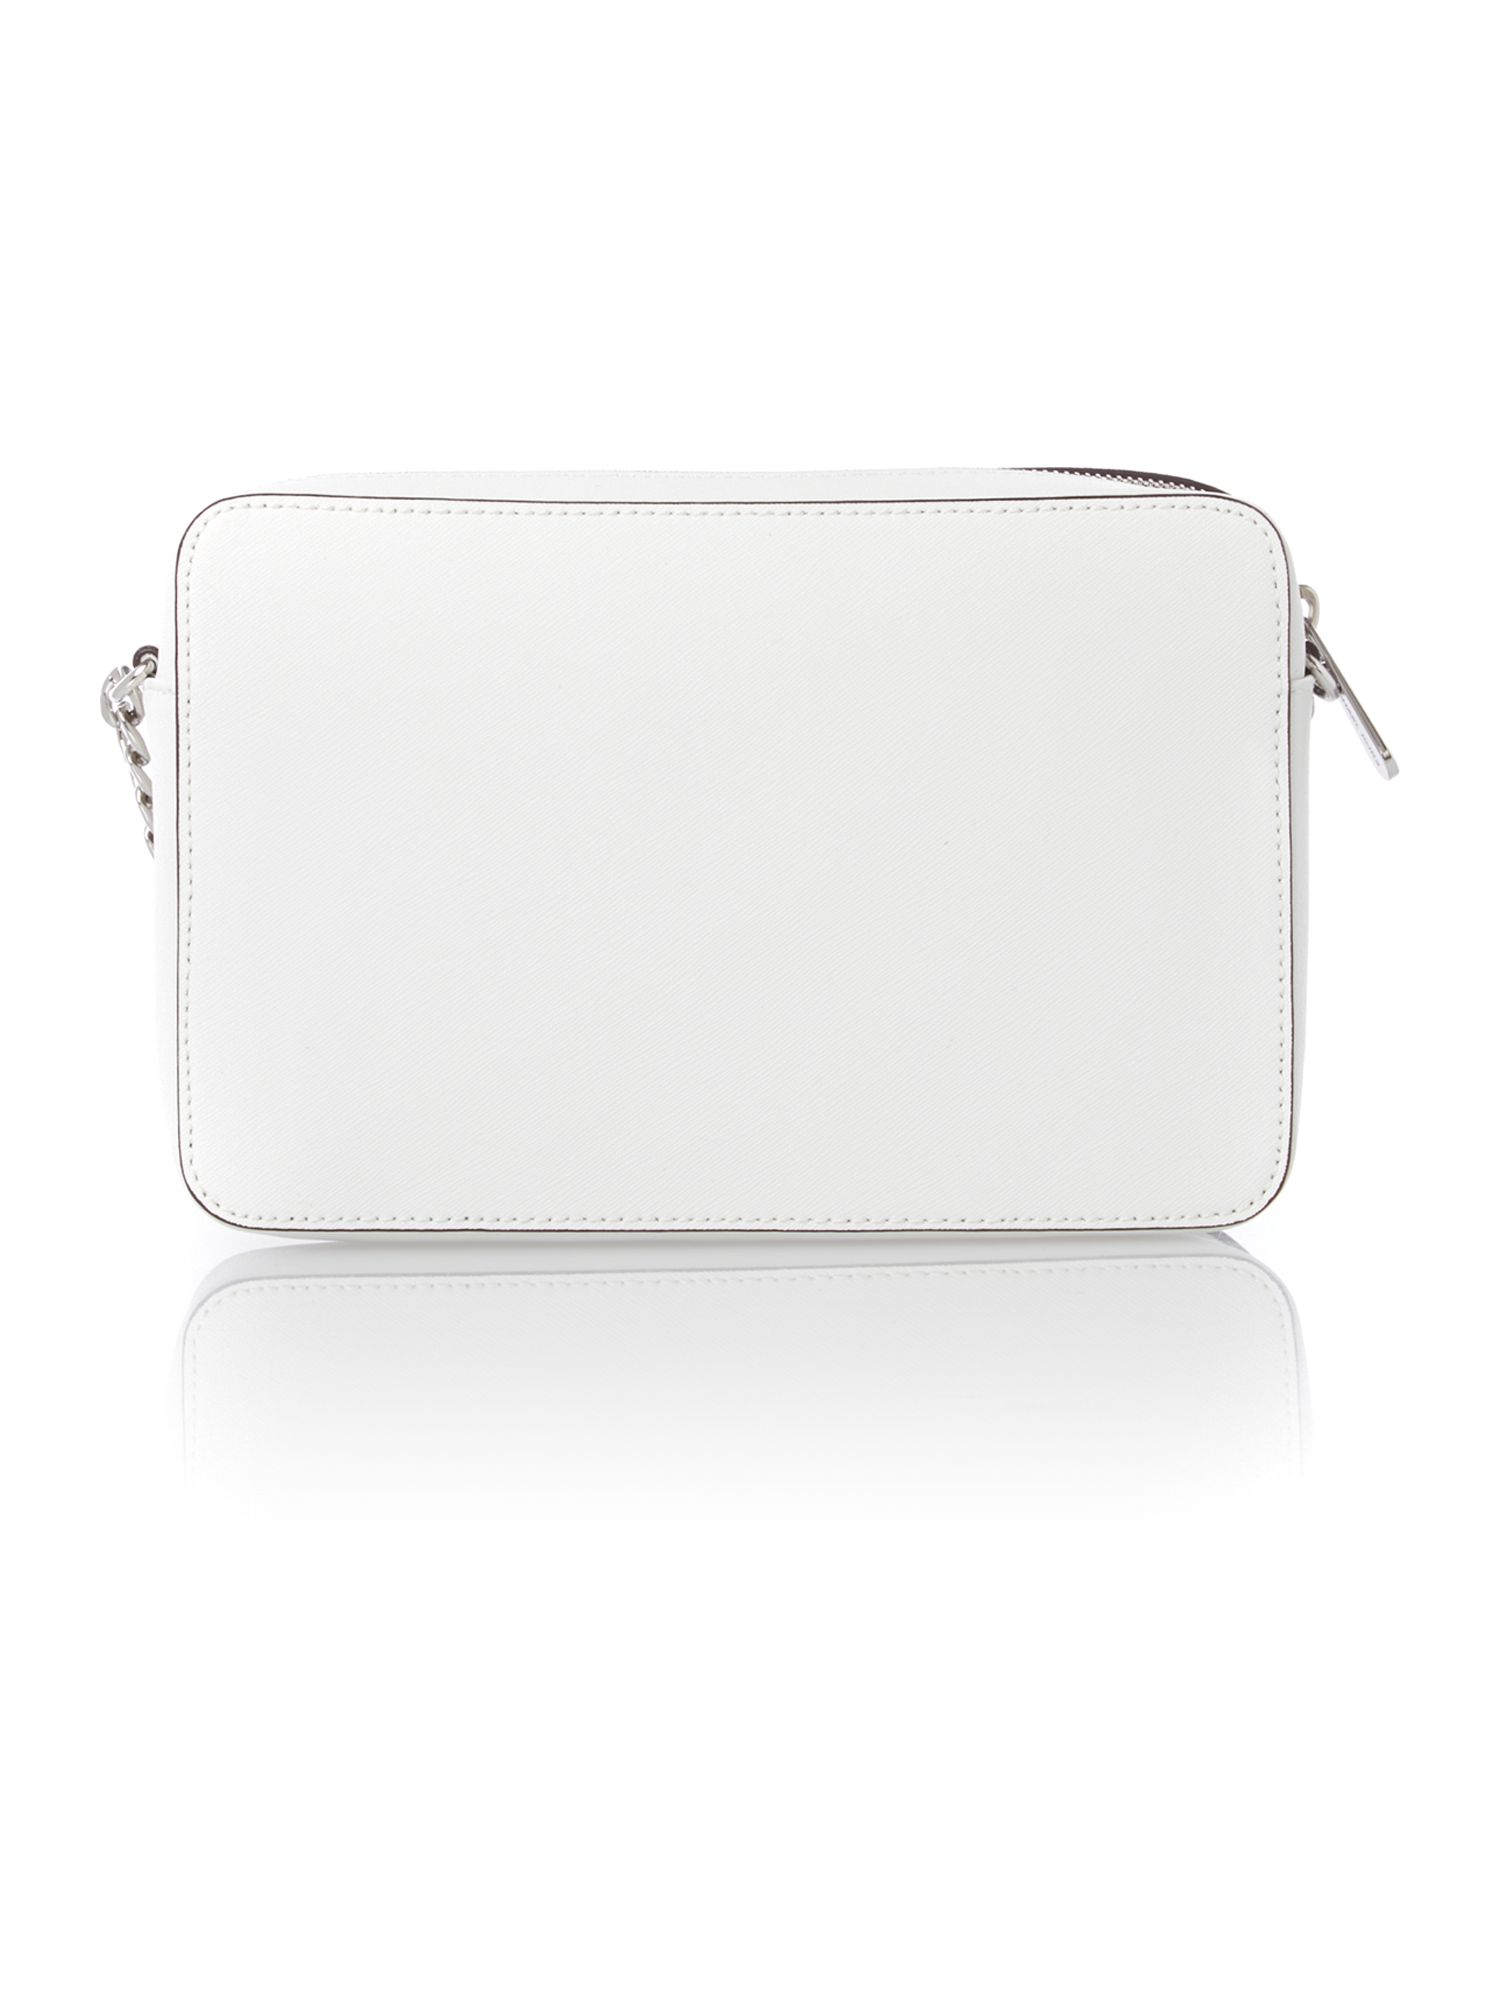 Jet set travel small white cross body bag